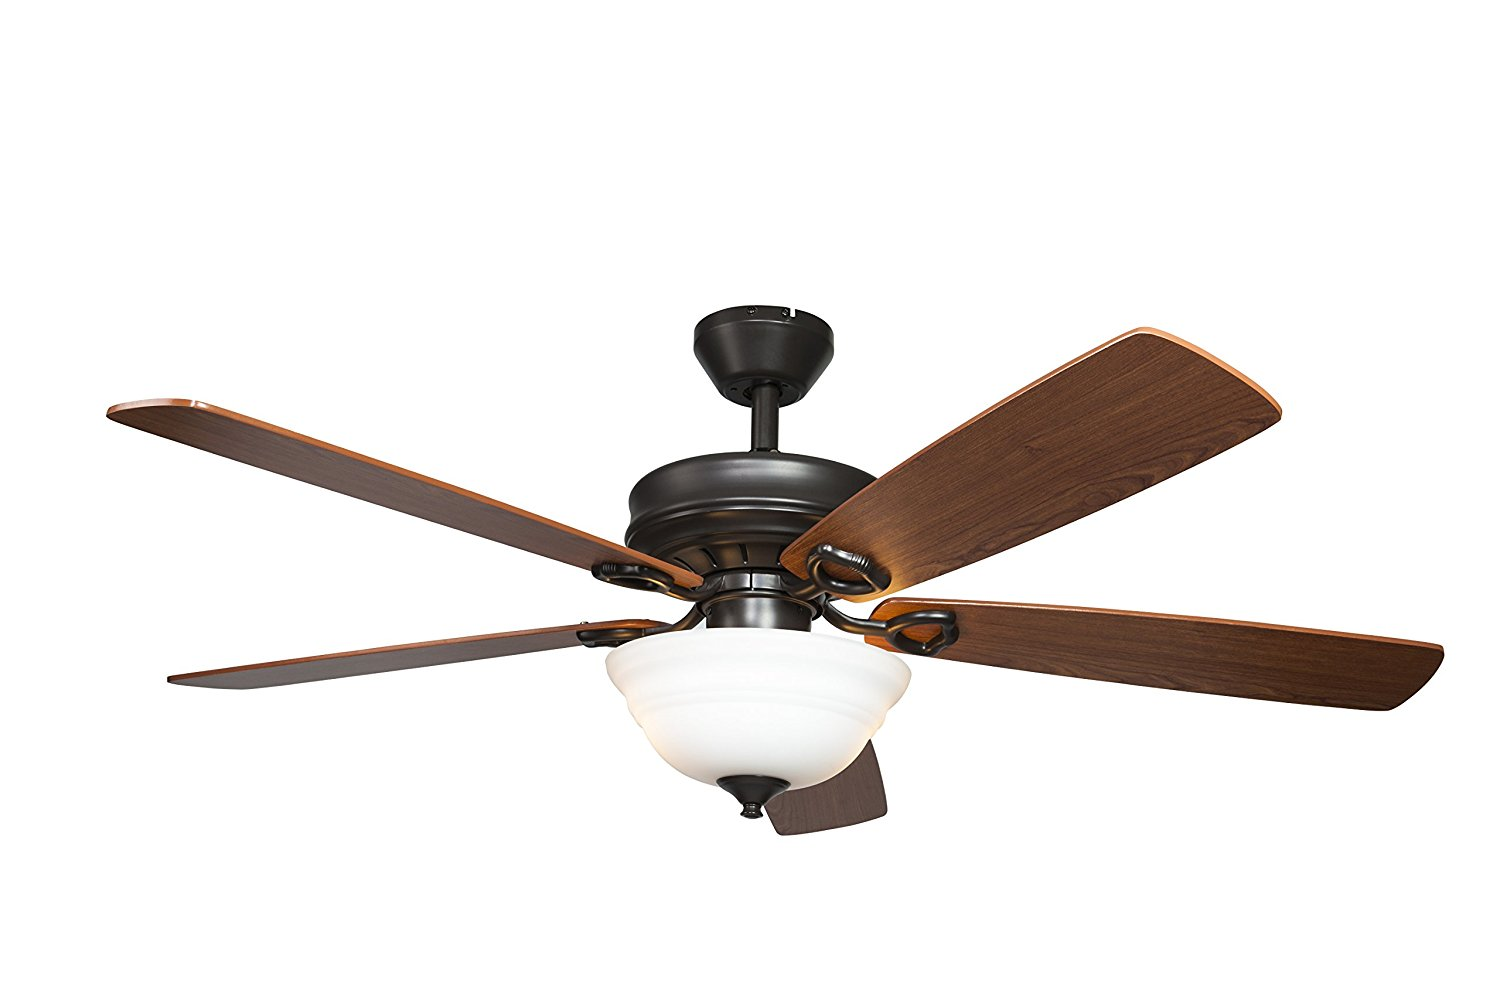 Remote Control Ceiling Fans With Led Lights Ceiling Fans With Remote Control Benefit Cool Ideas For Home